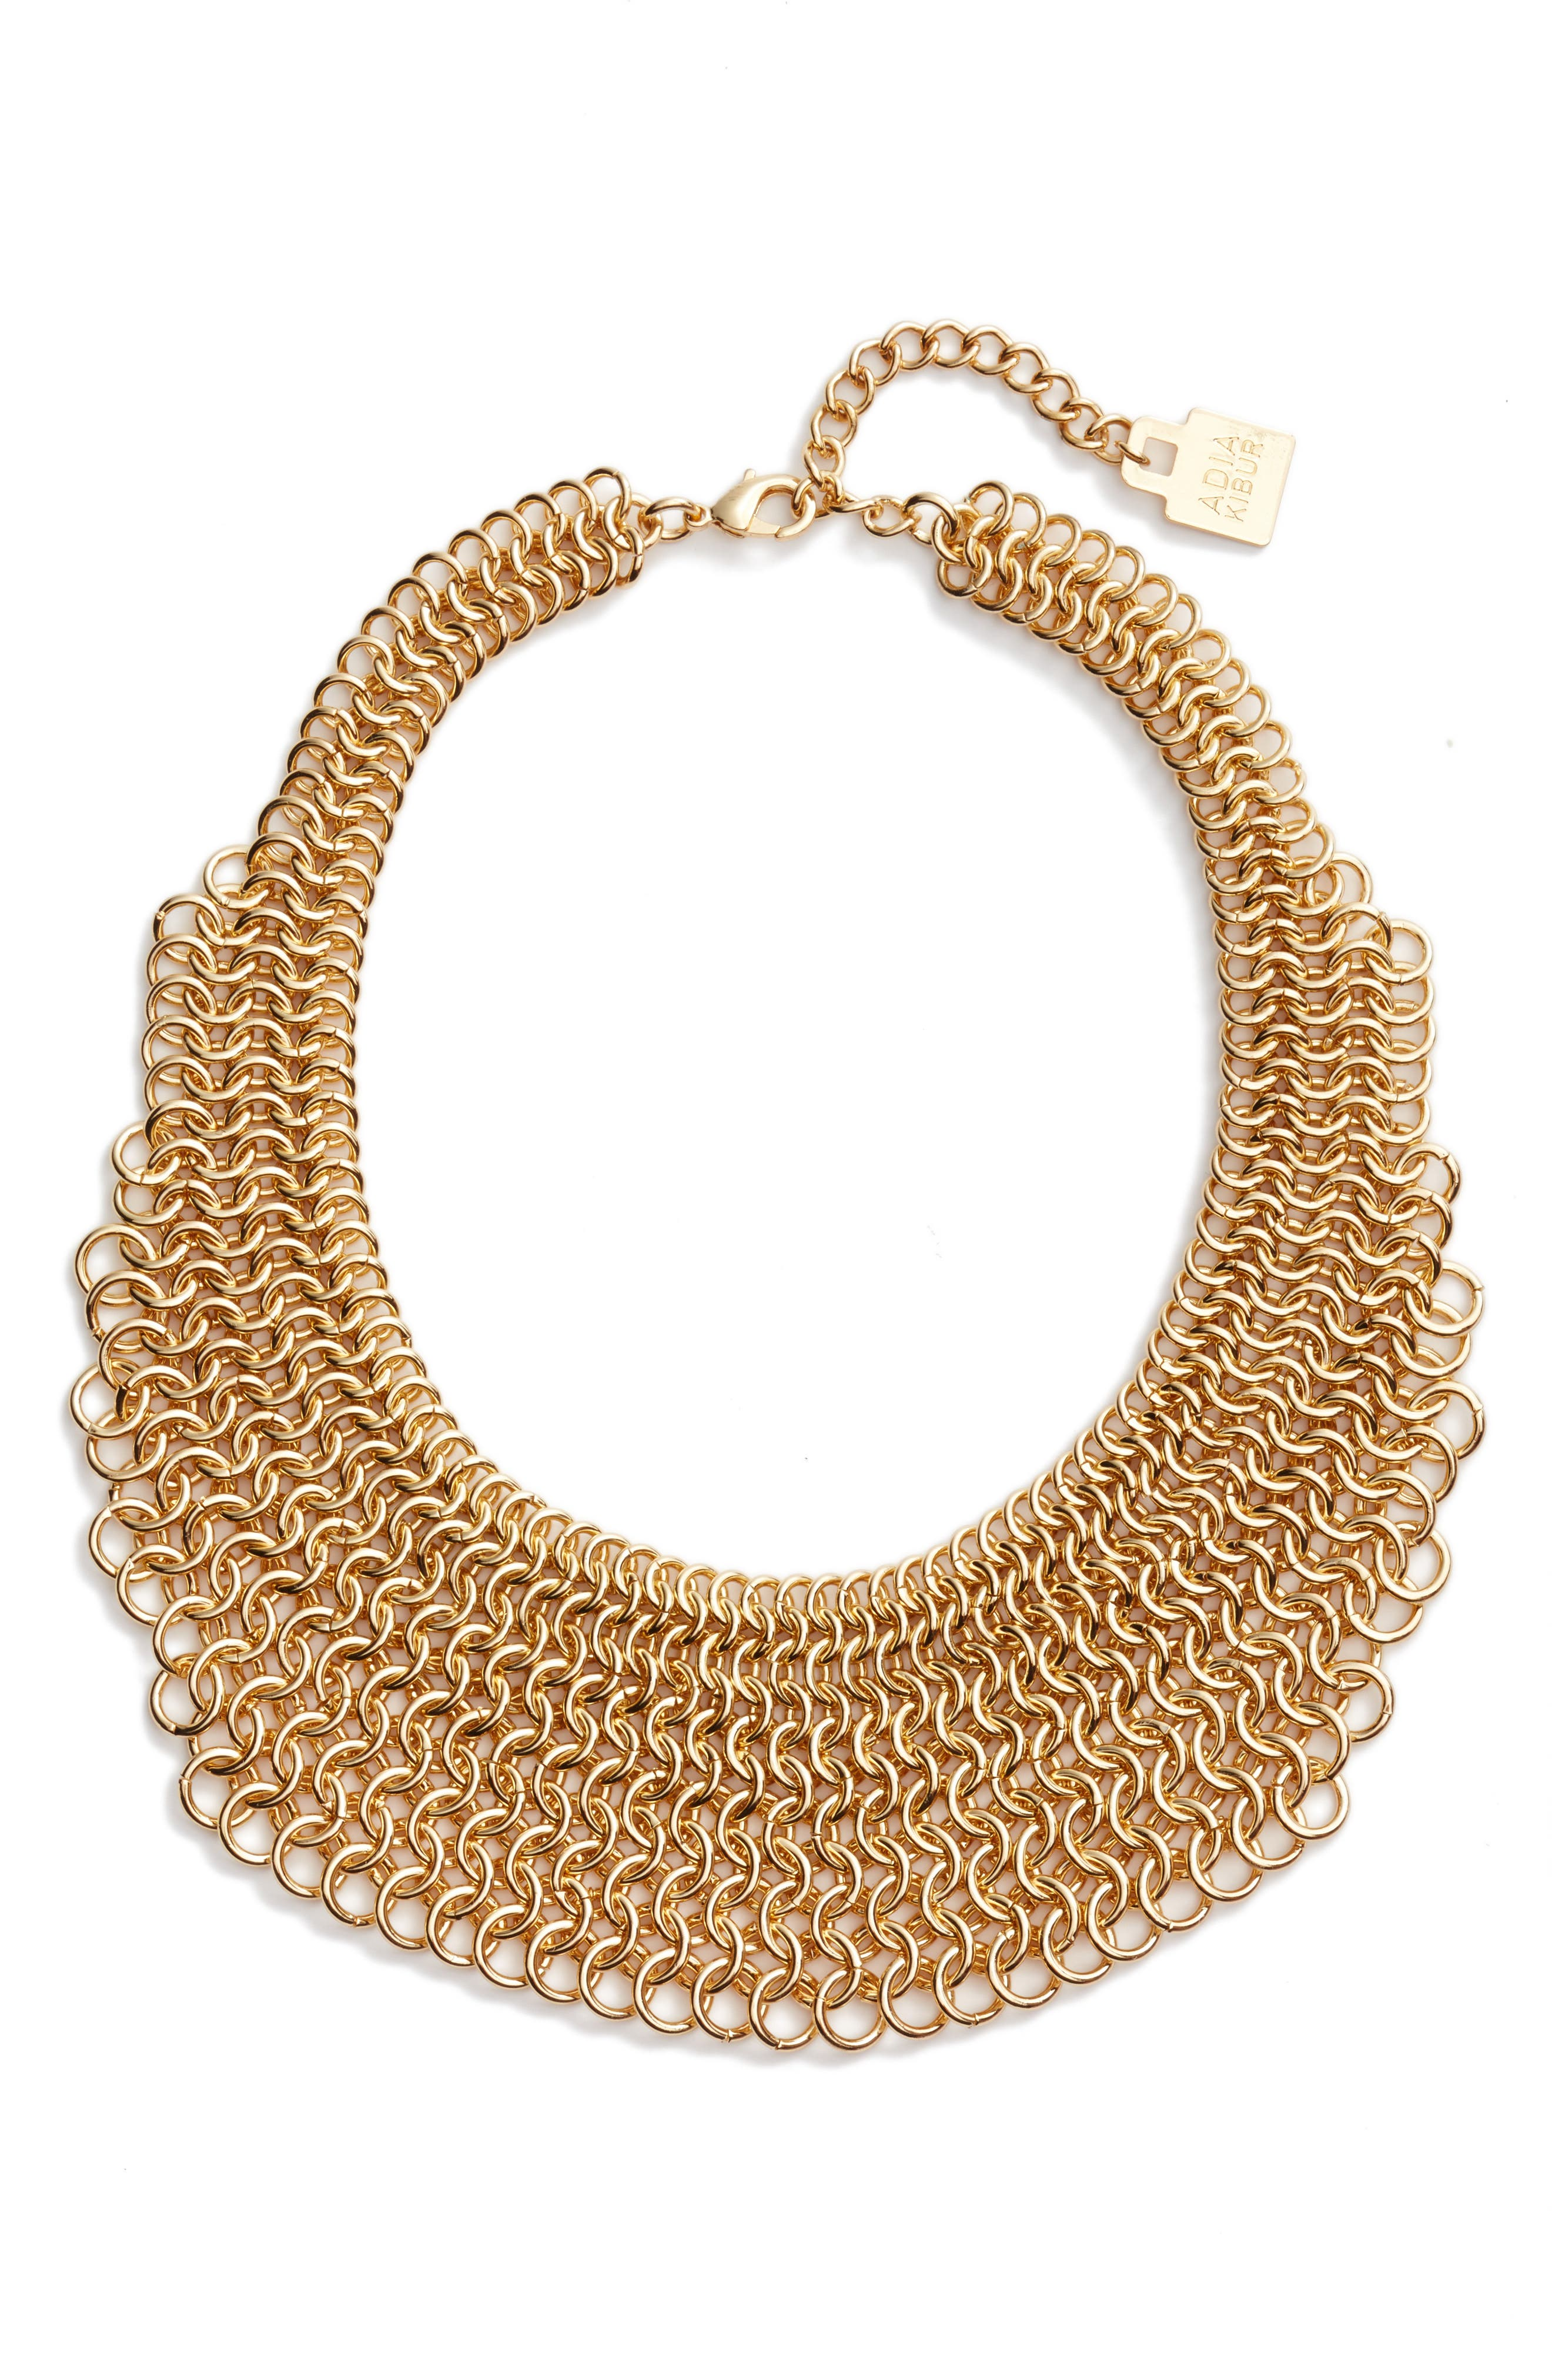 Linked Circle Statement Bib Necklace,                         Main,                         color, 710